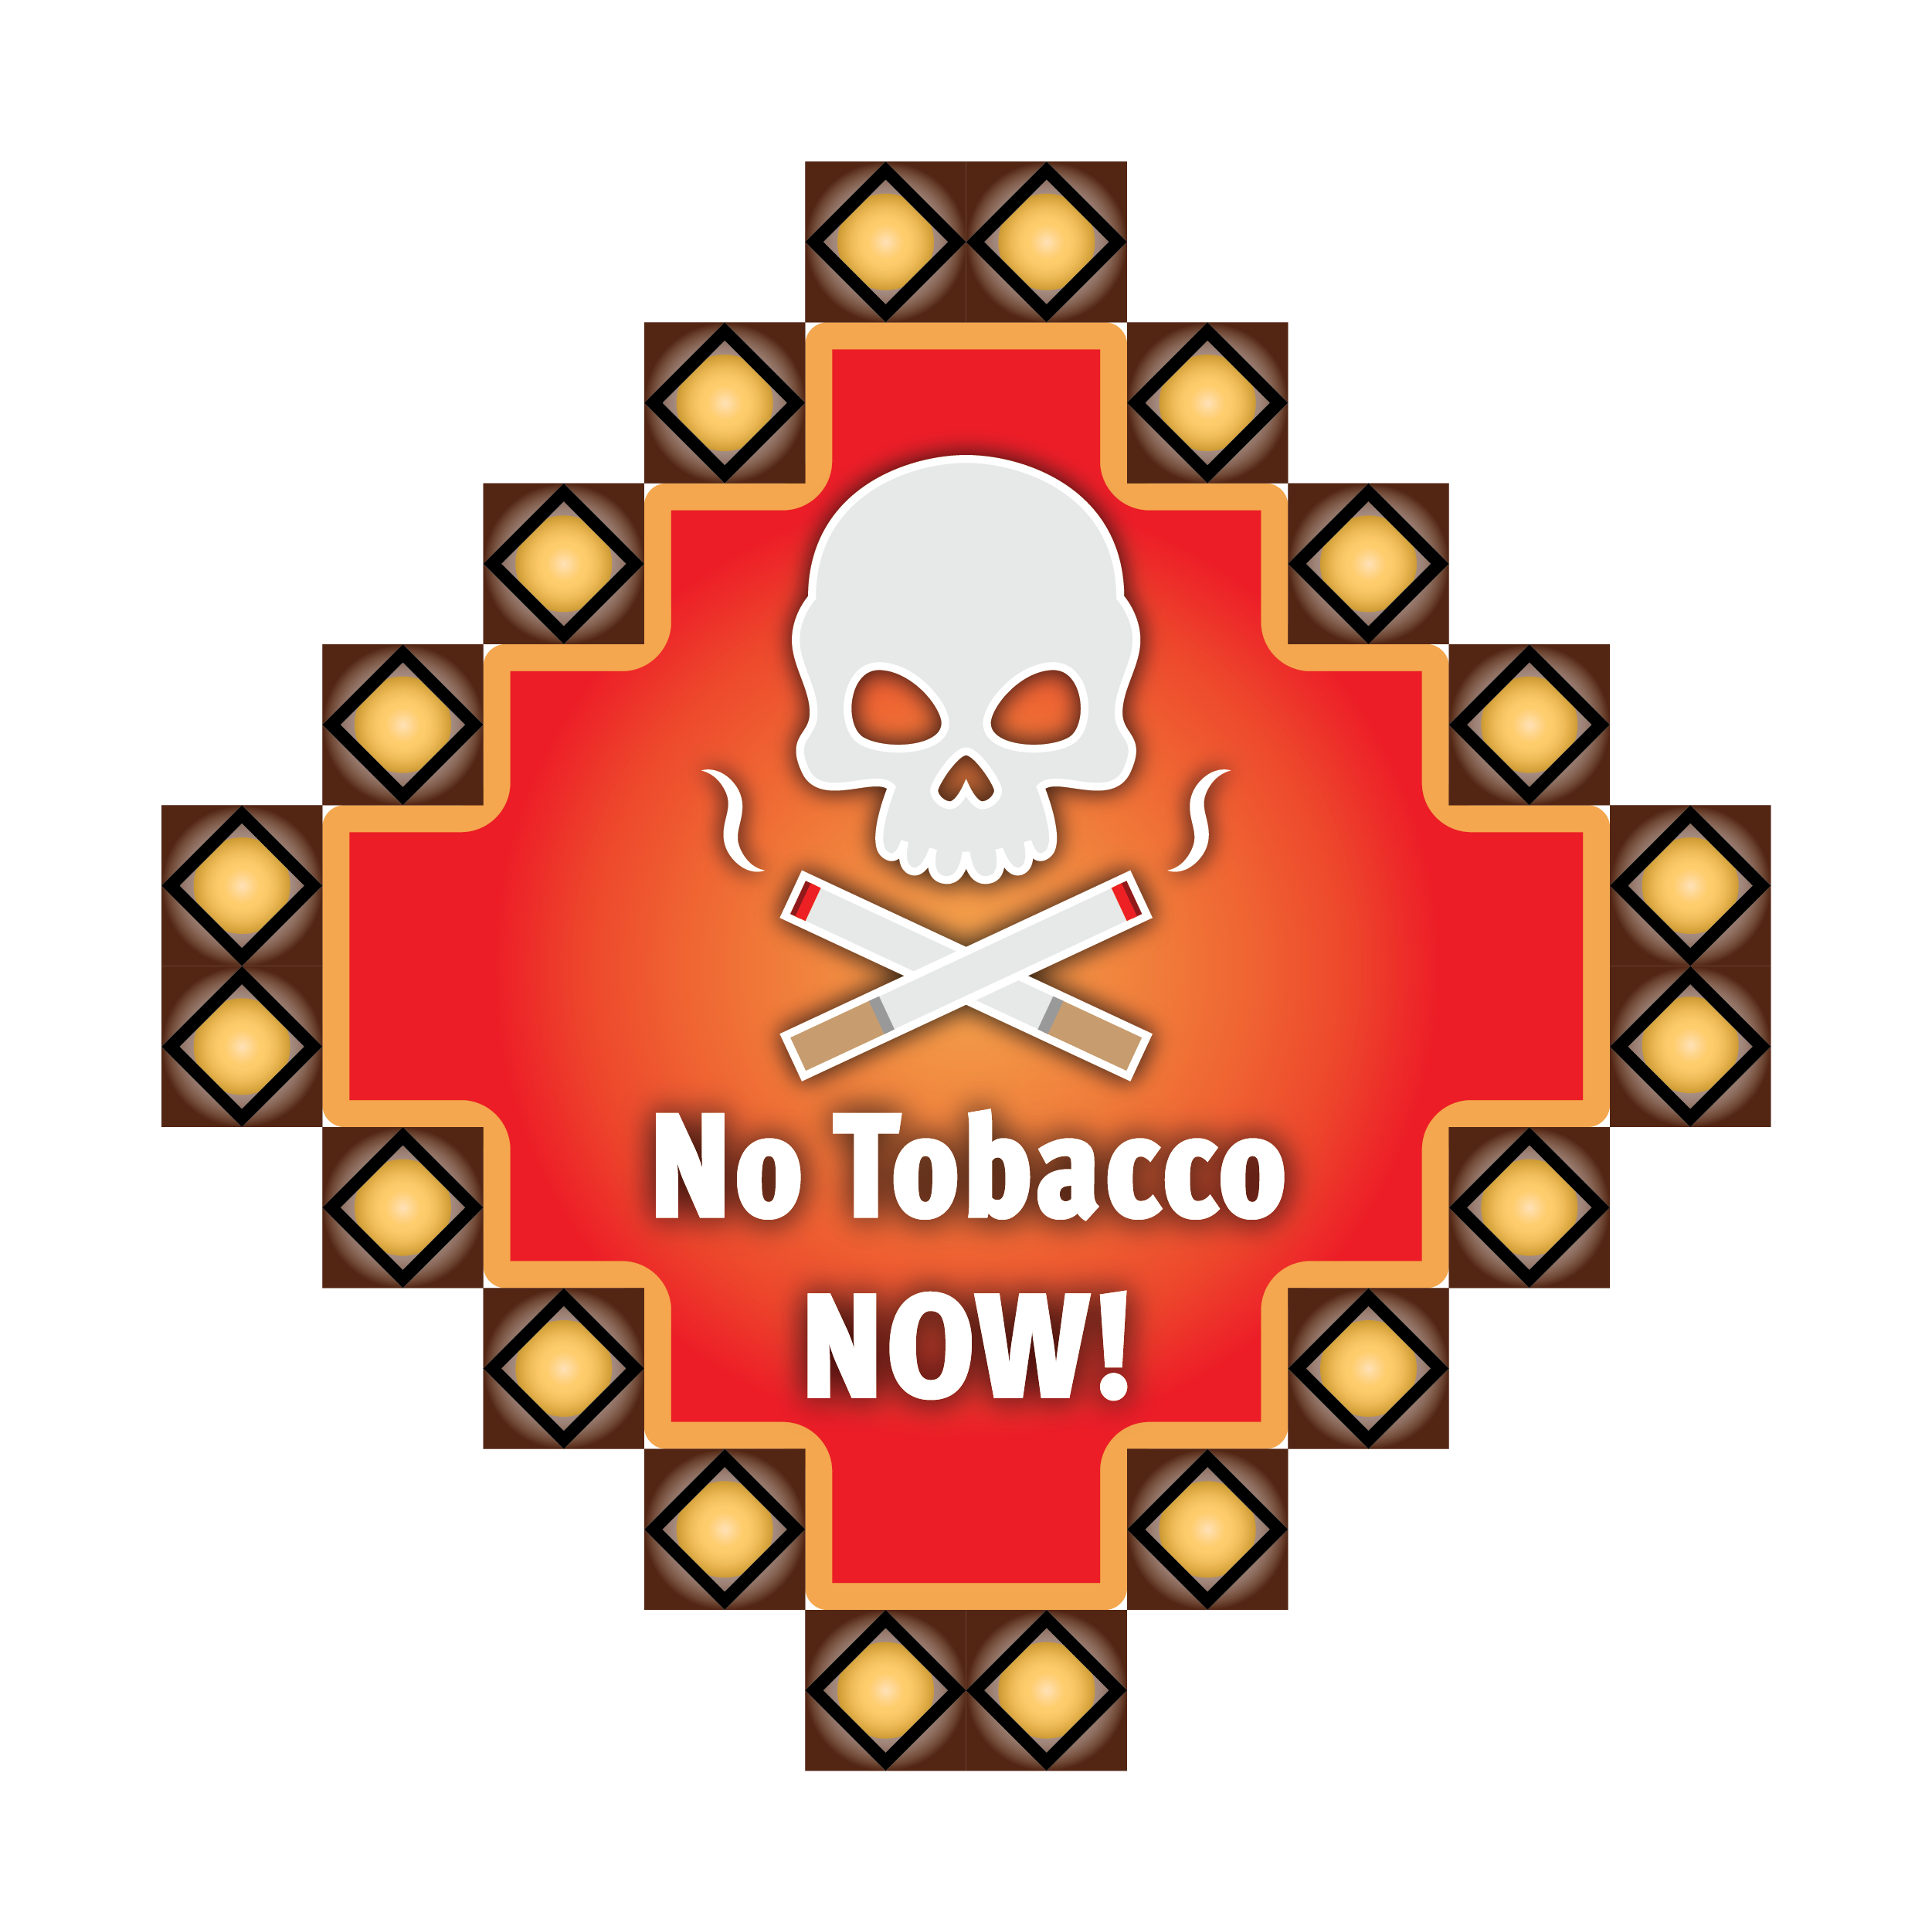 kNOw Tobacco Now!